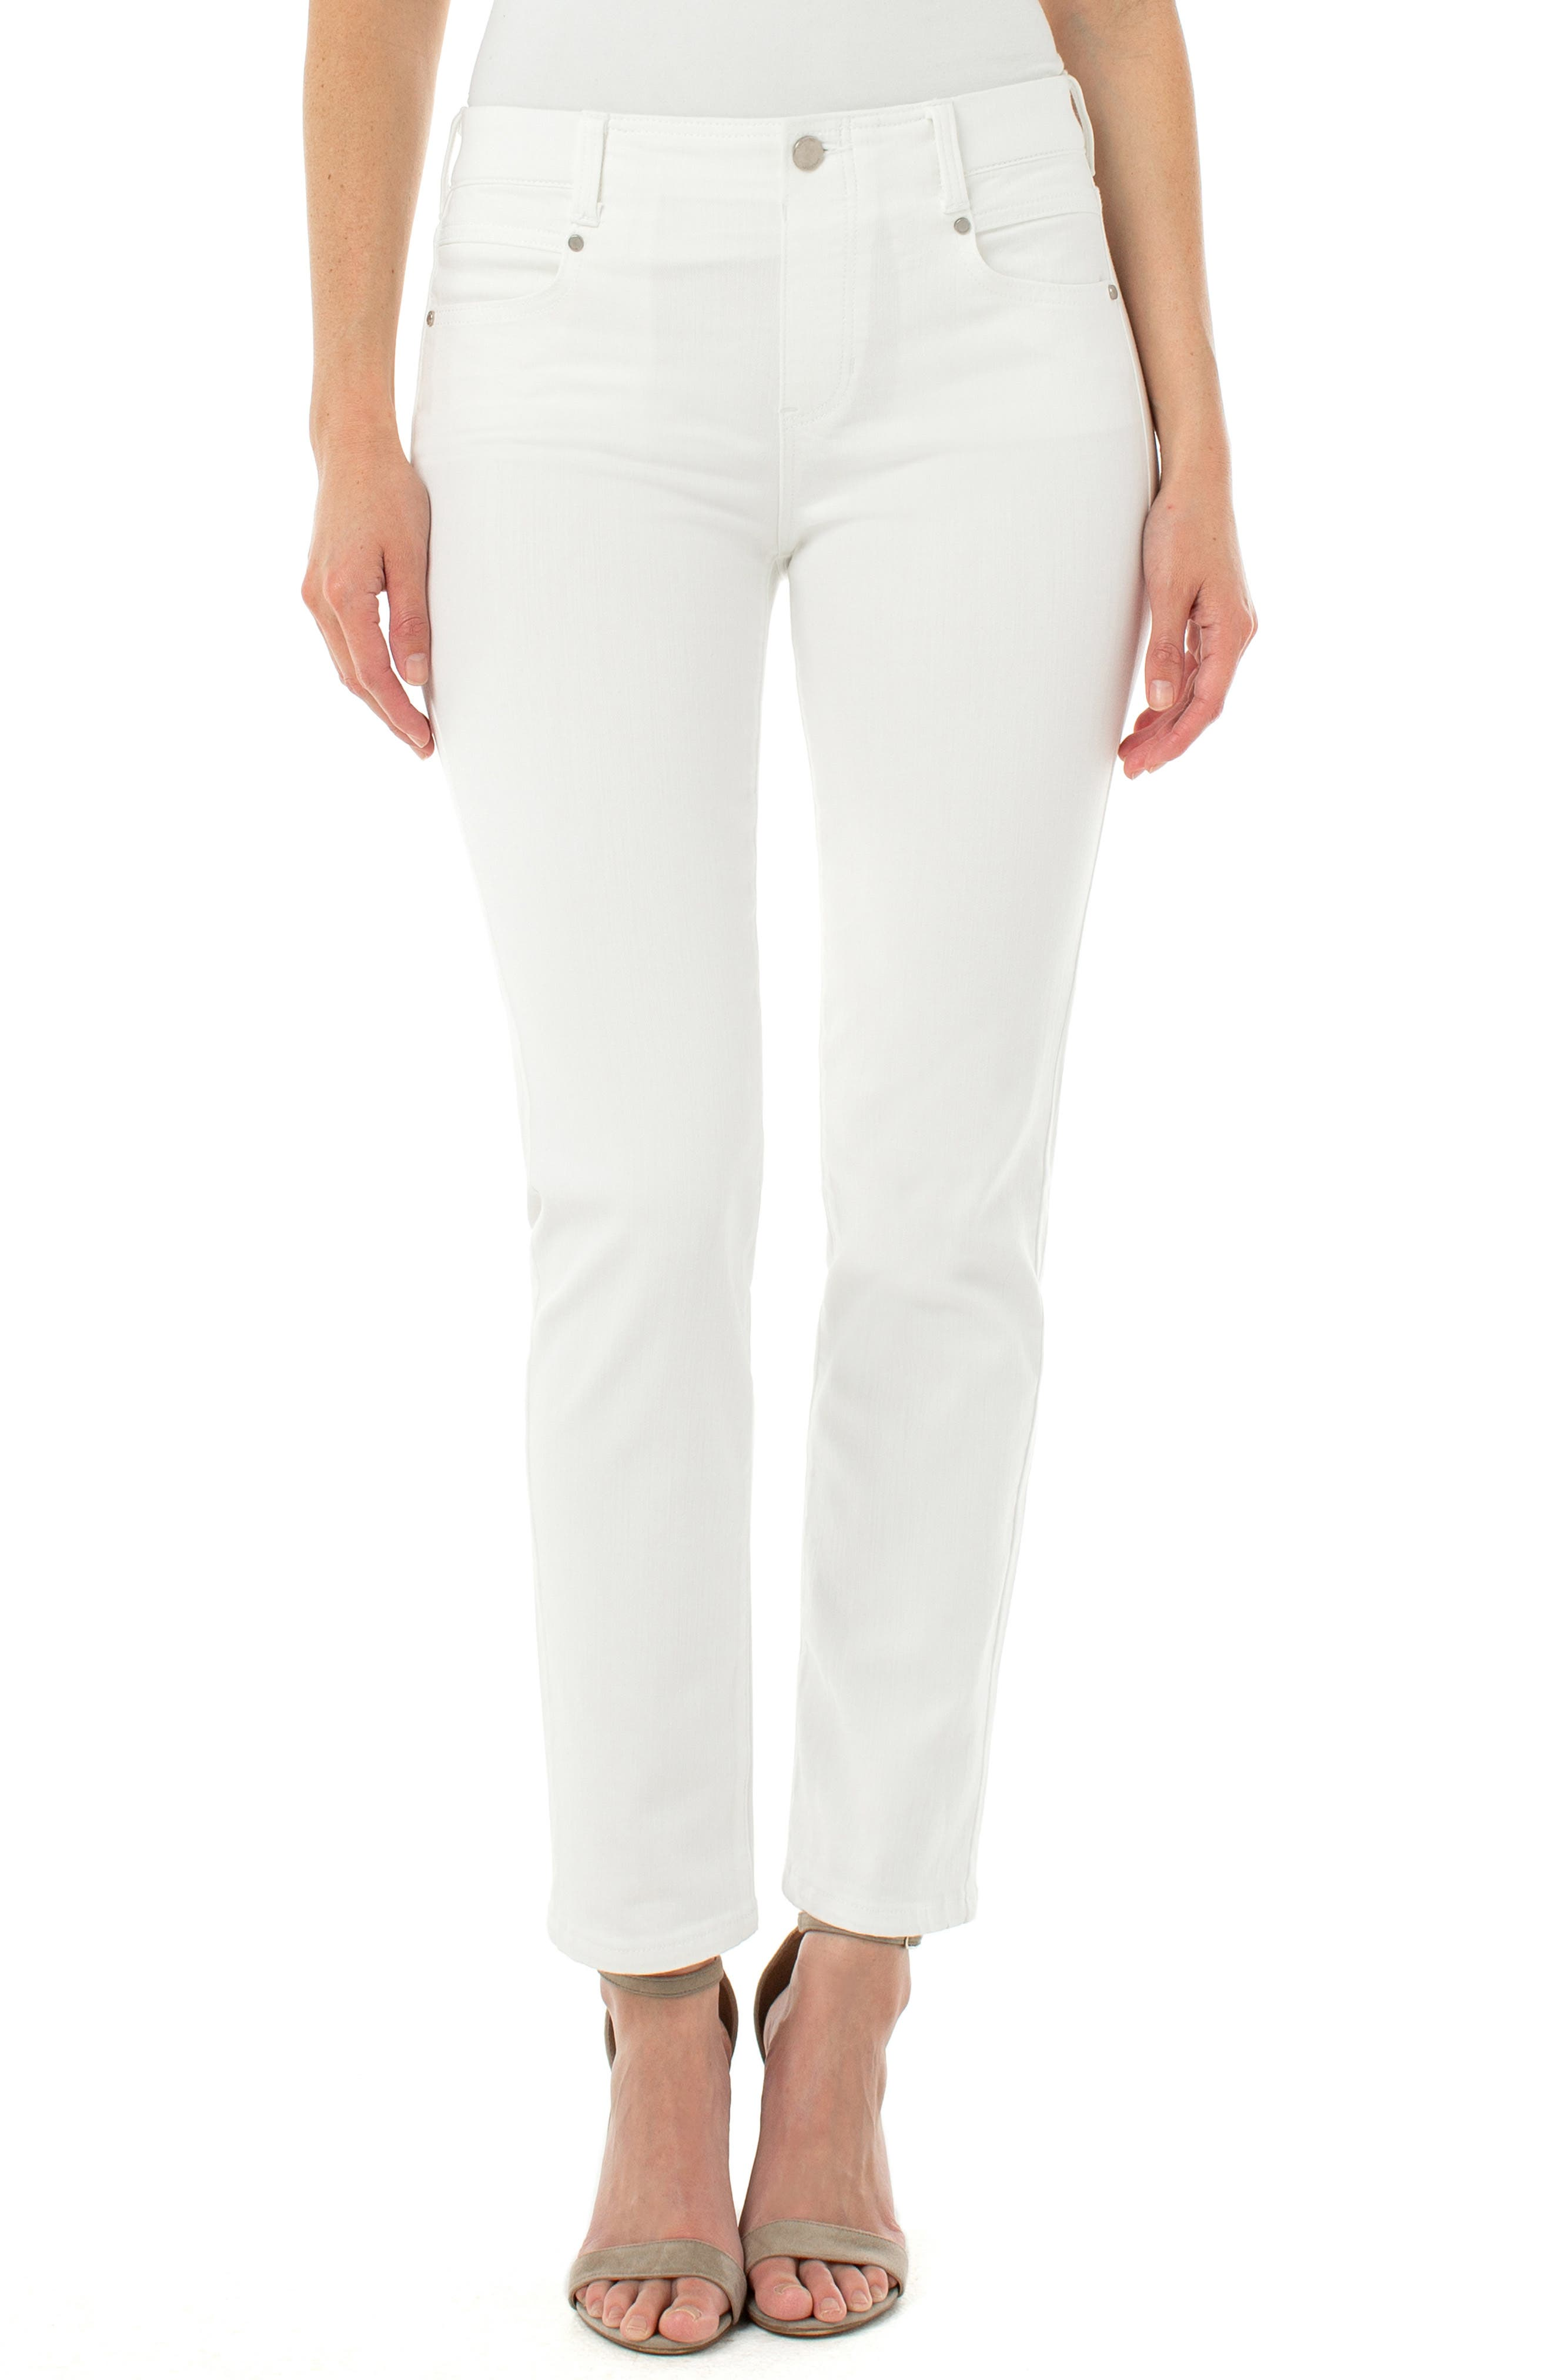 Take white-jeans season in sunny stride with a pull-on pair, designed with a faux fly and a touch of comfy stretch. Style Name: Liverpool Gia Glider Slim Pull-On Jeans. Style Number: 5958703. Available in stores.